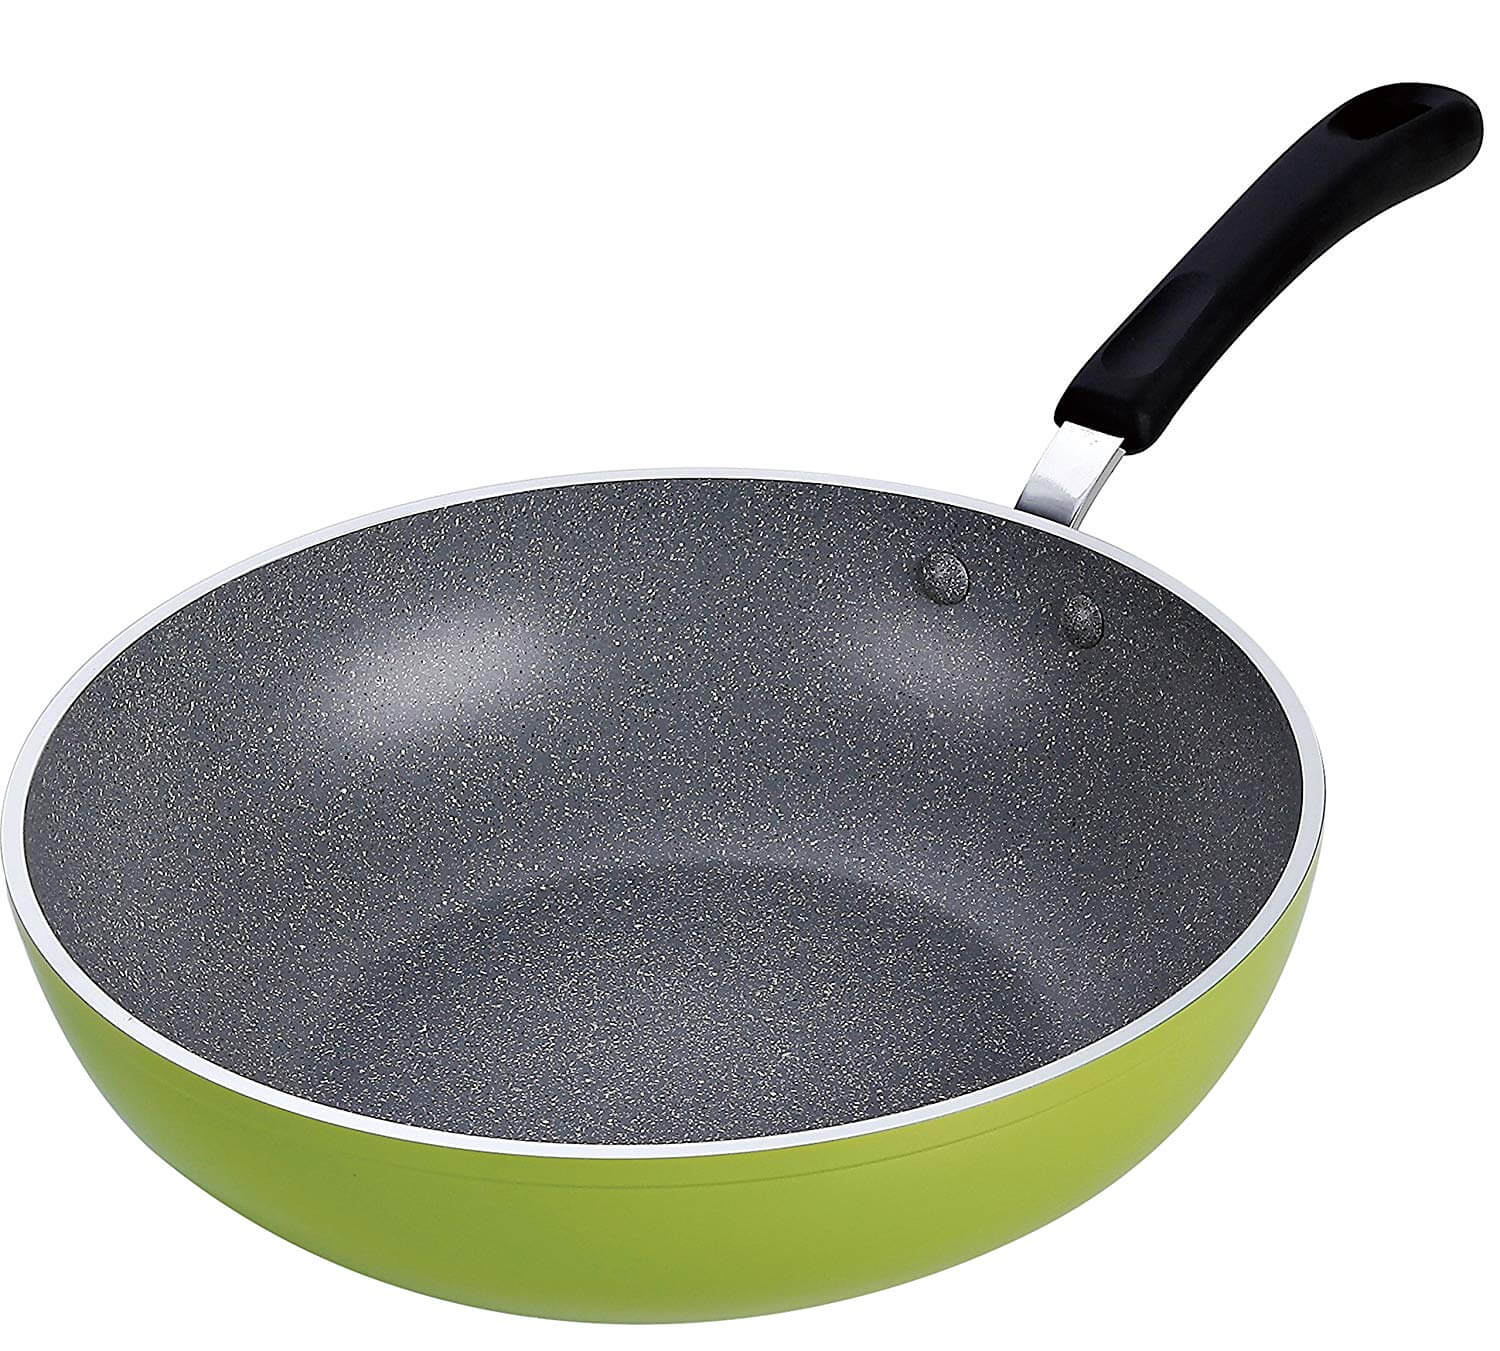 Cook N Home 12-Inch Nonstick Stir Fry Wok Pan